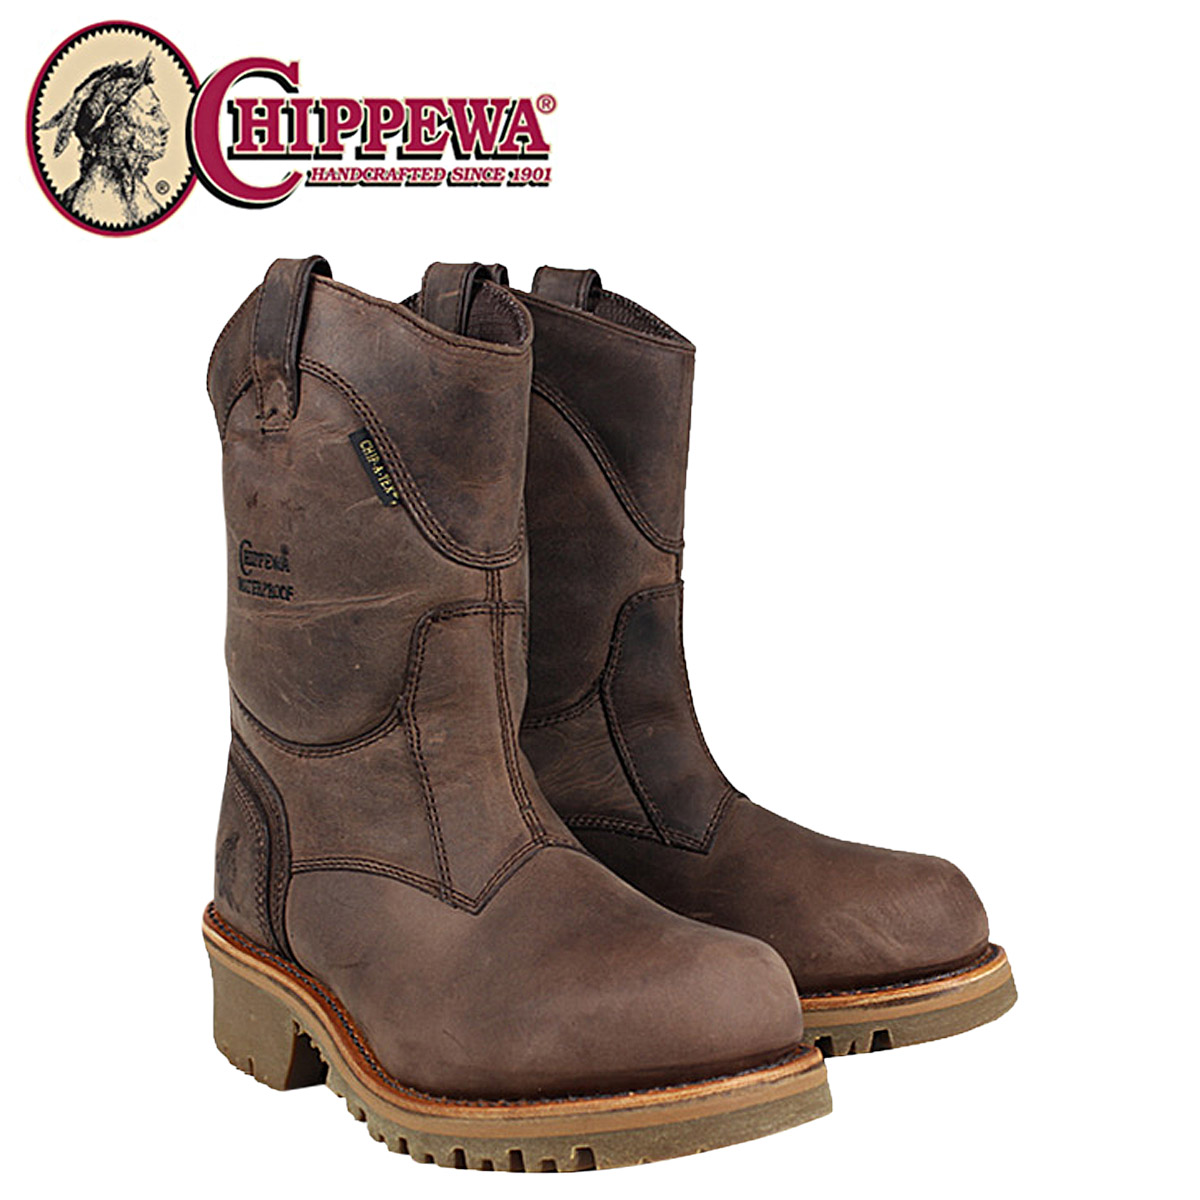 Whats up Sports | Rakuten Global Market: [SOLD OUT]-Chippewa